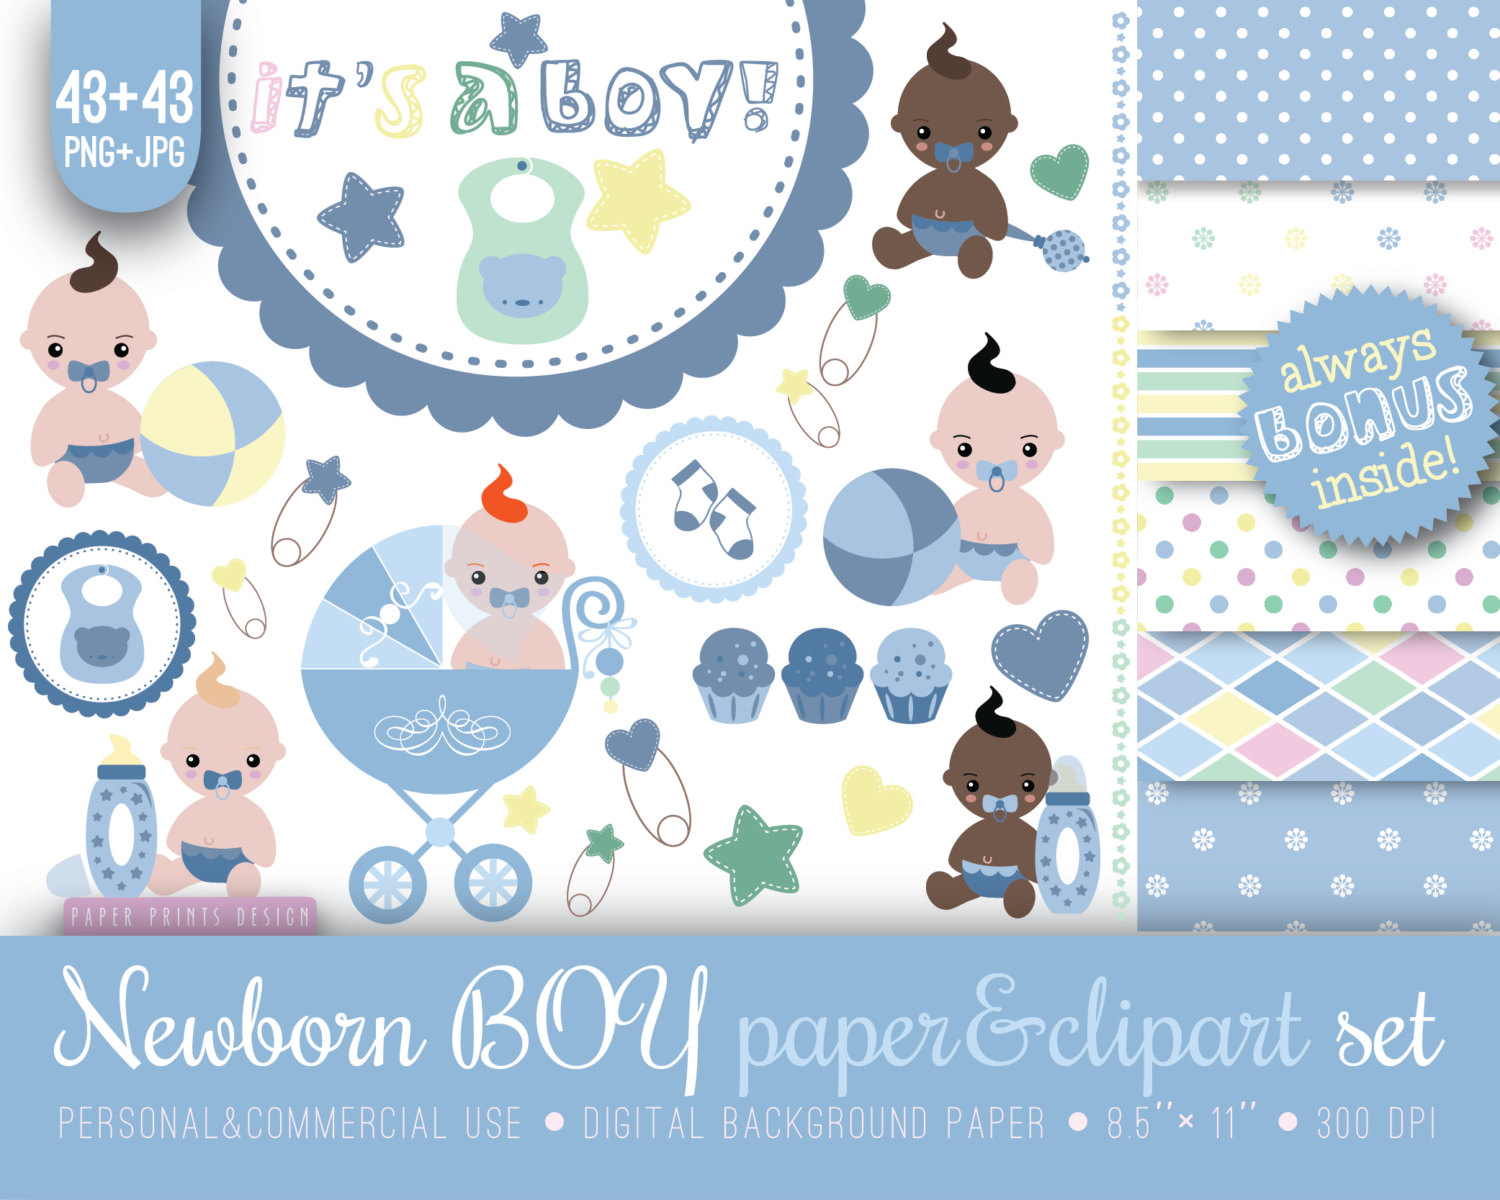 Blue paw print clipart 90px wide and tall clipart transparent Shower clipart blue print - ClipartFest clipart transparent